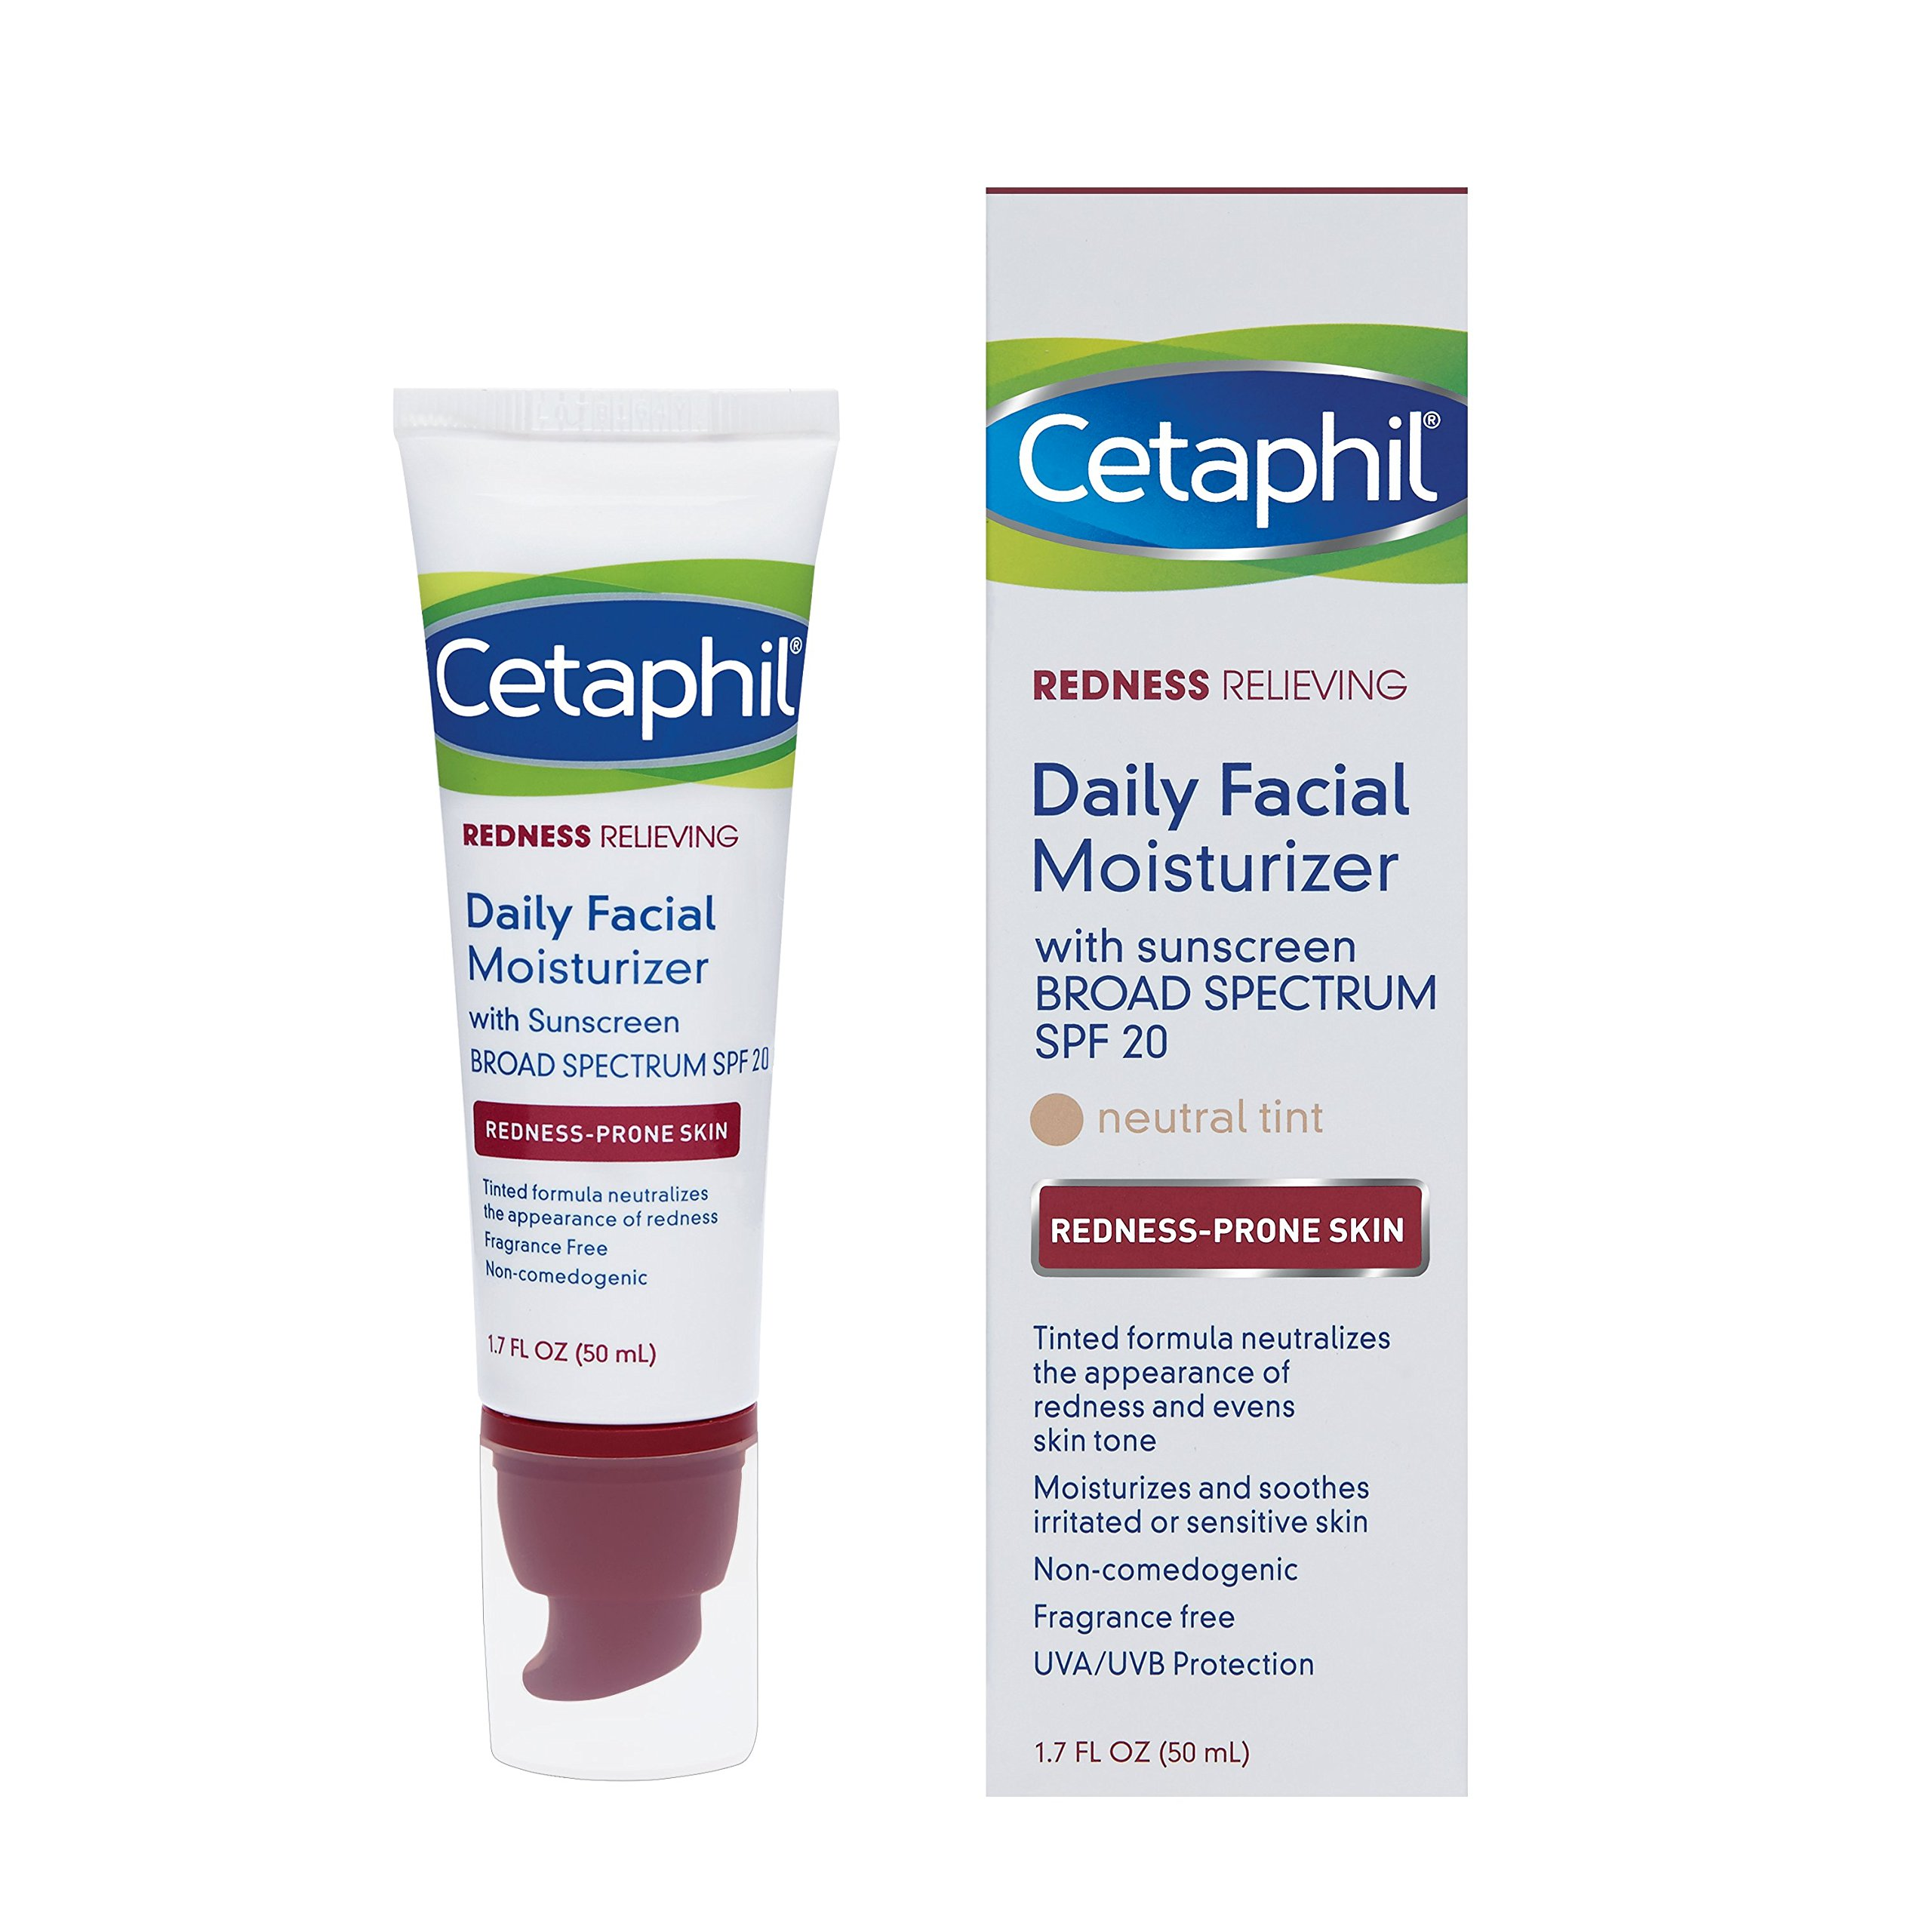 Cetaphil Redness Relieving Daily Facial Moisturizer SPF 20, 1.7 Ounce by Cetaphil